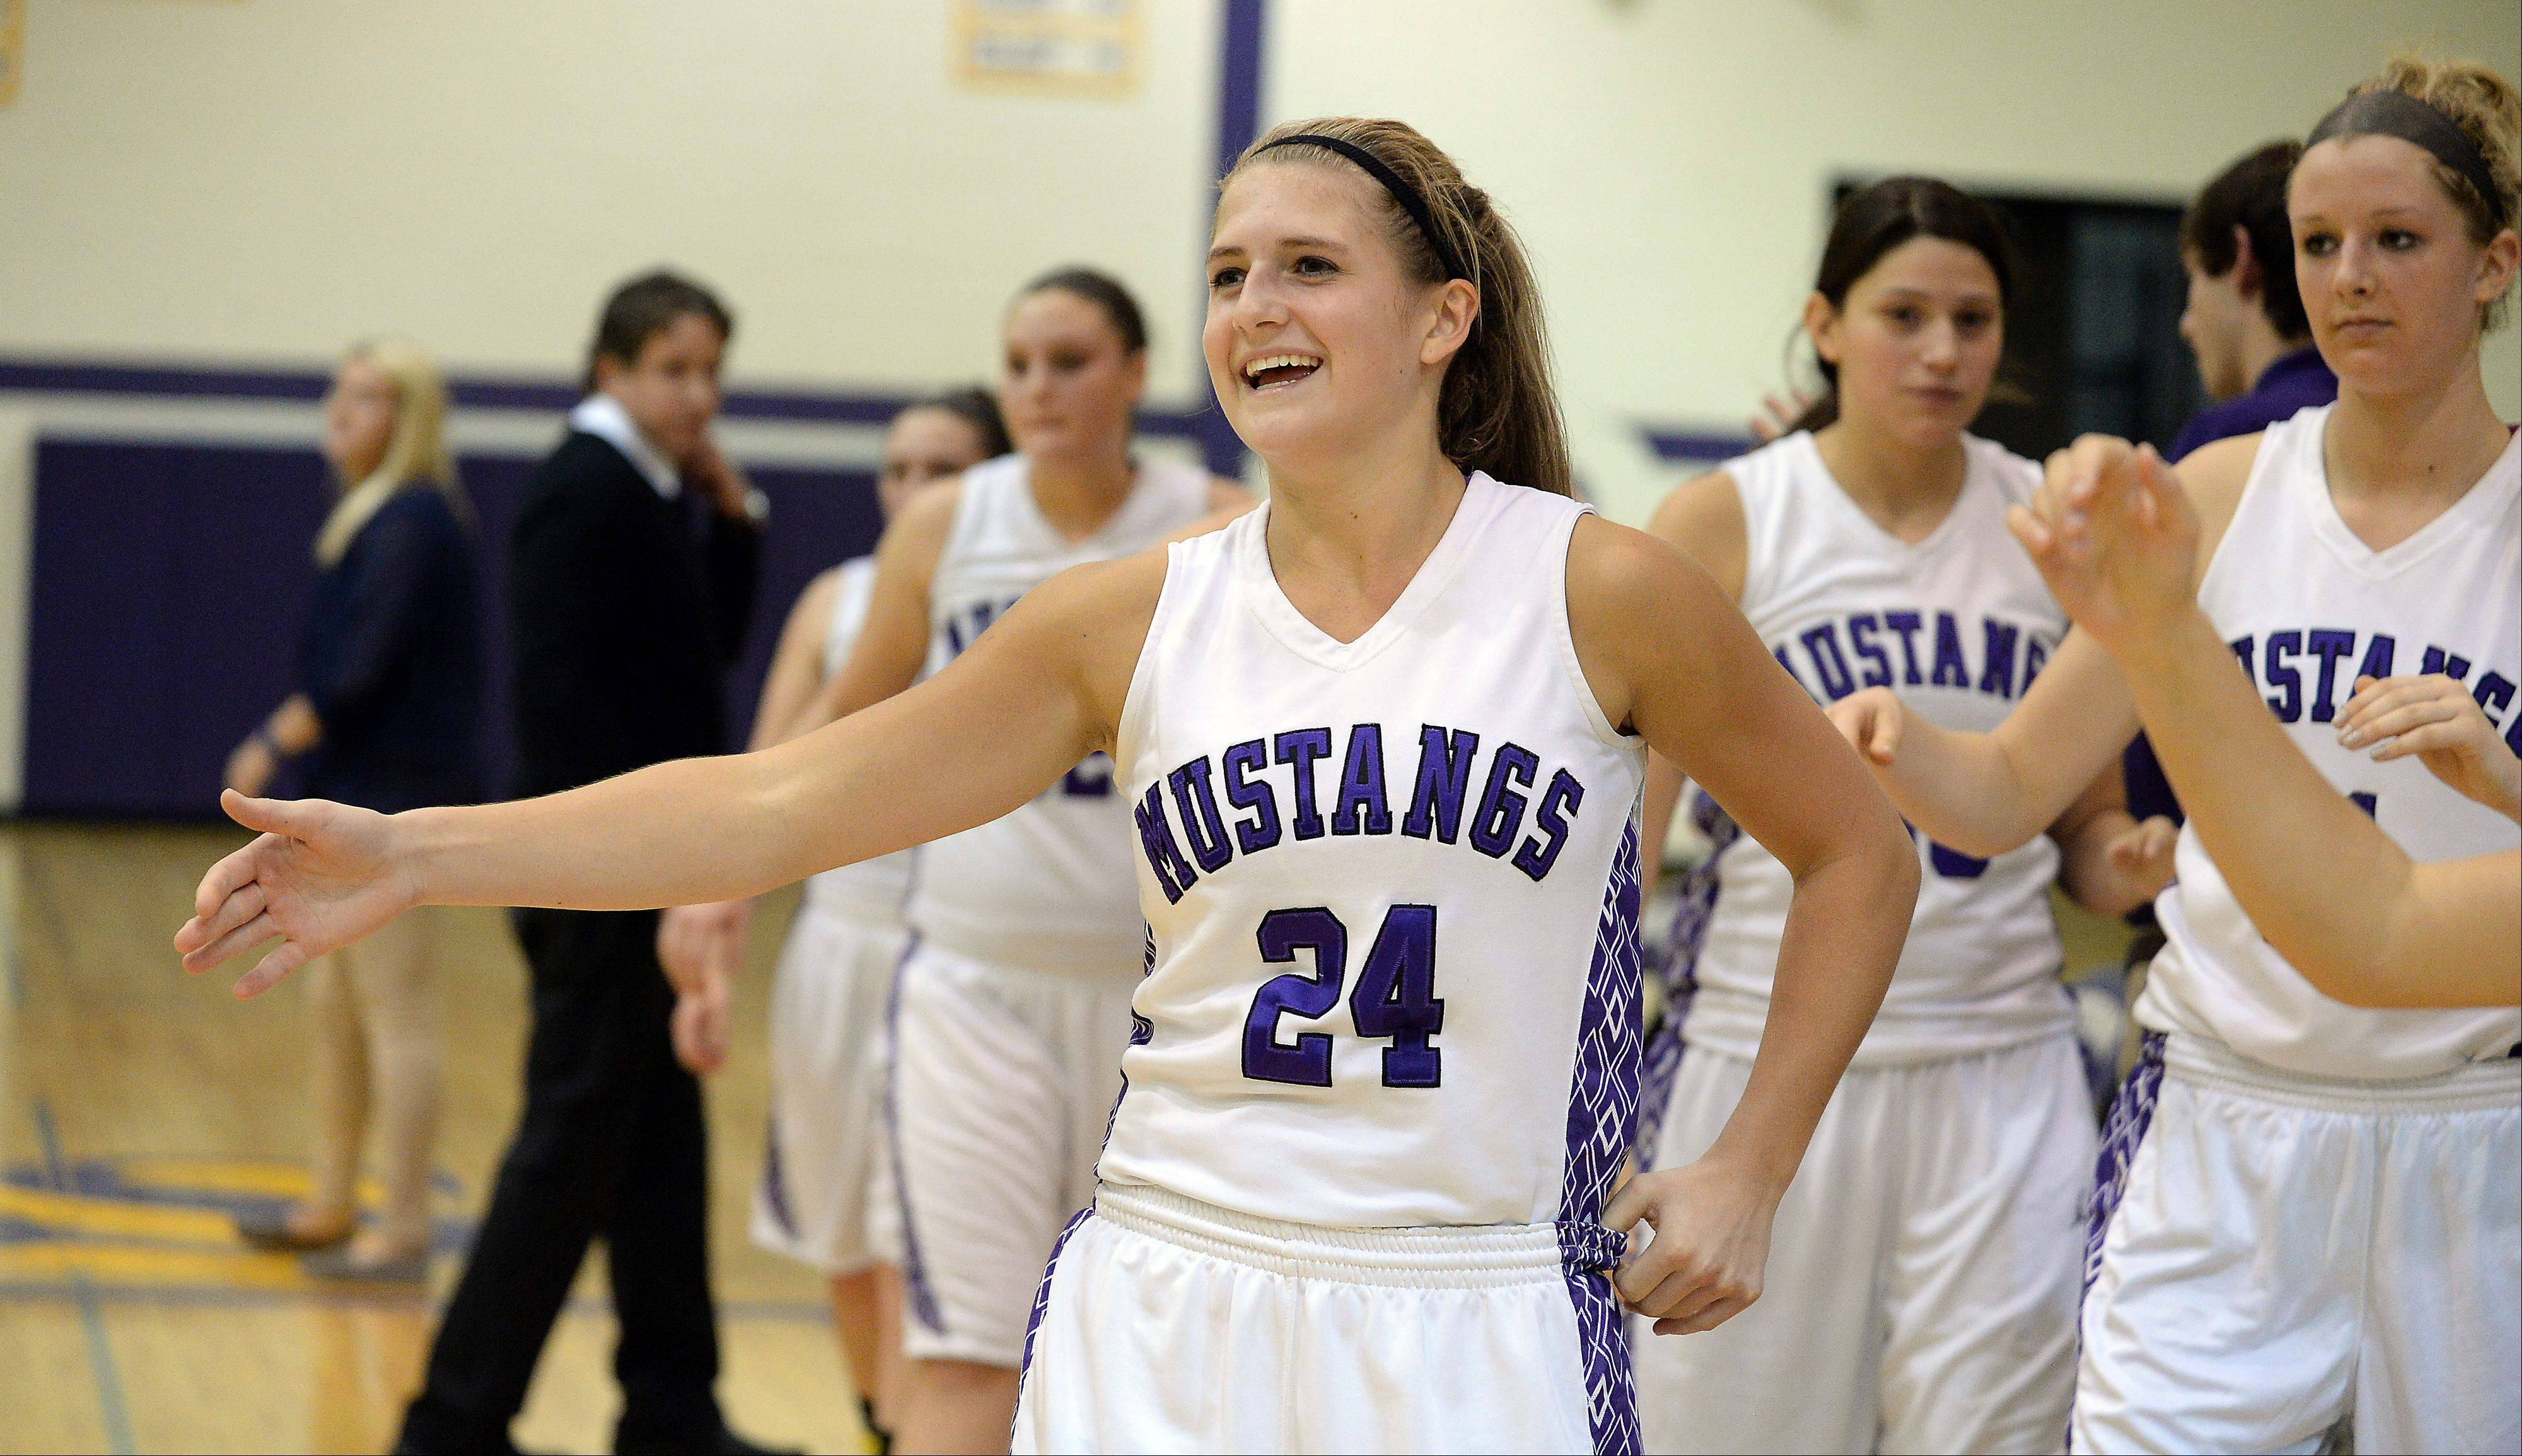 Rolling Meadows' Alexis Glasgow is all smiles after Thursday's season opener against Cary-Grove, during which the Northwestern recruit eclipsed the 1,000-point mark in a 75-59 Mustangs triumph.